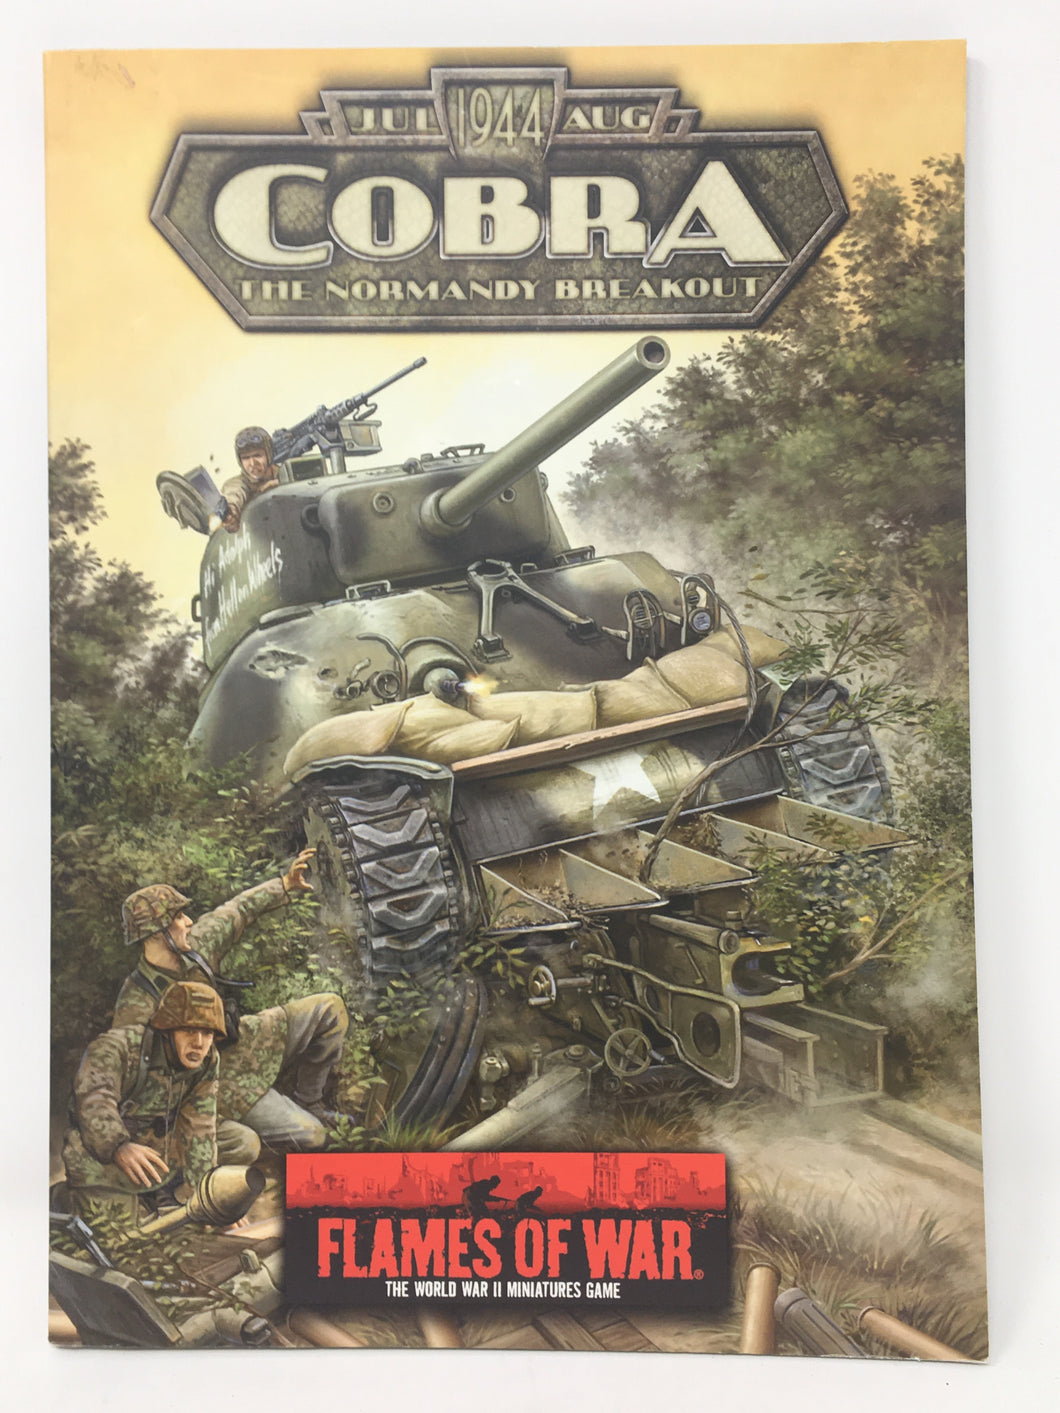 Flames of War - Cobra - Player's Handbook